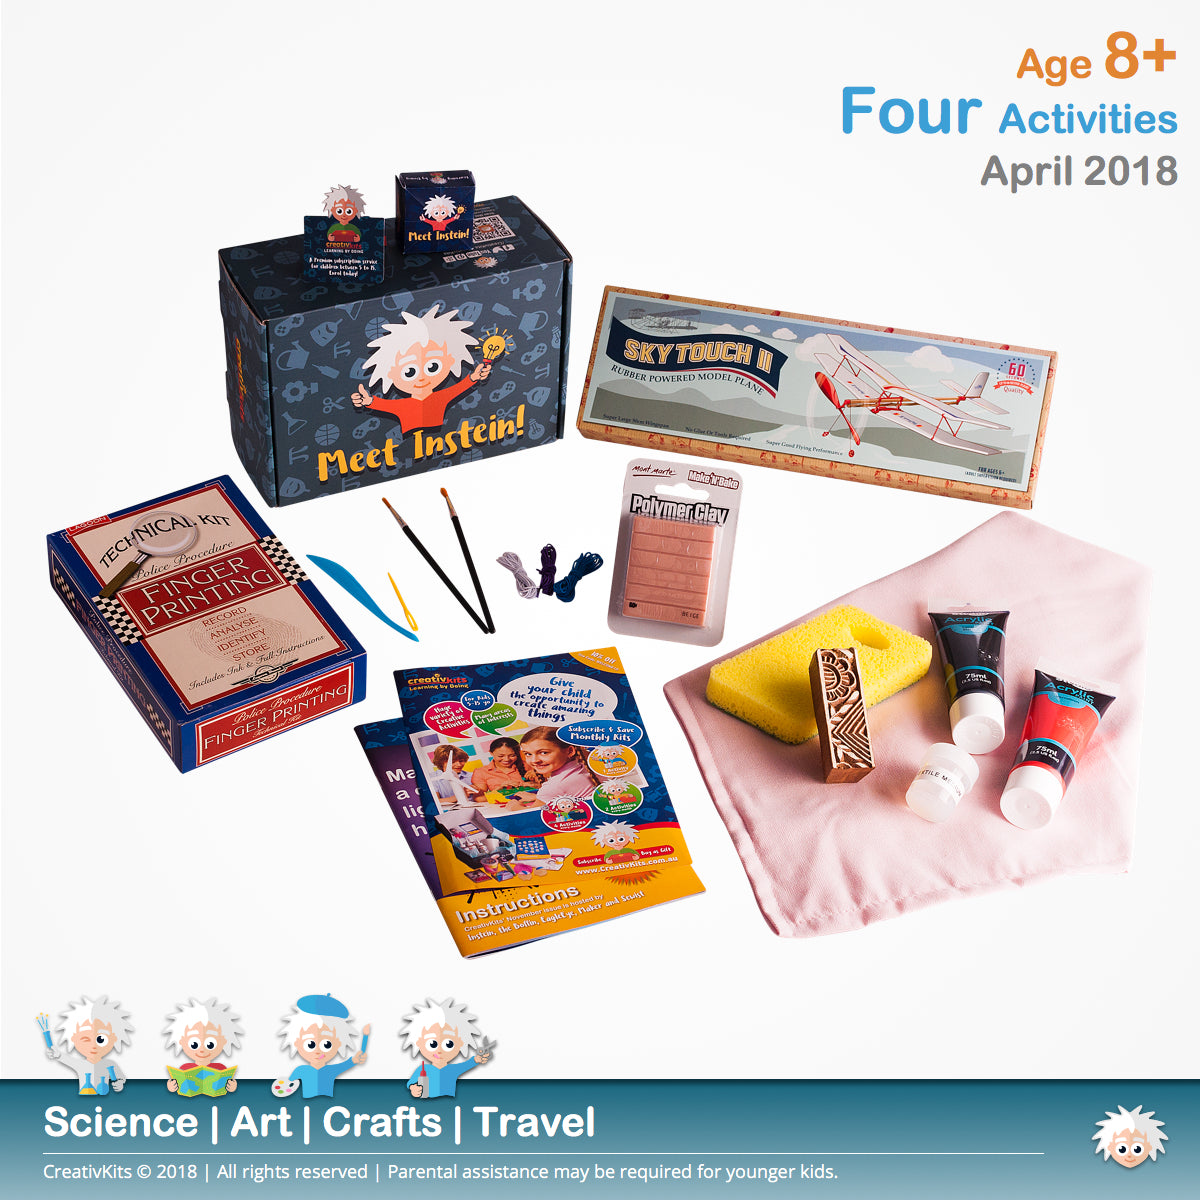 Block Cushions, Rubber Power Plane, Damask Pendants & Fingerprint Analysis | April Plus Kit | Age 8+